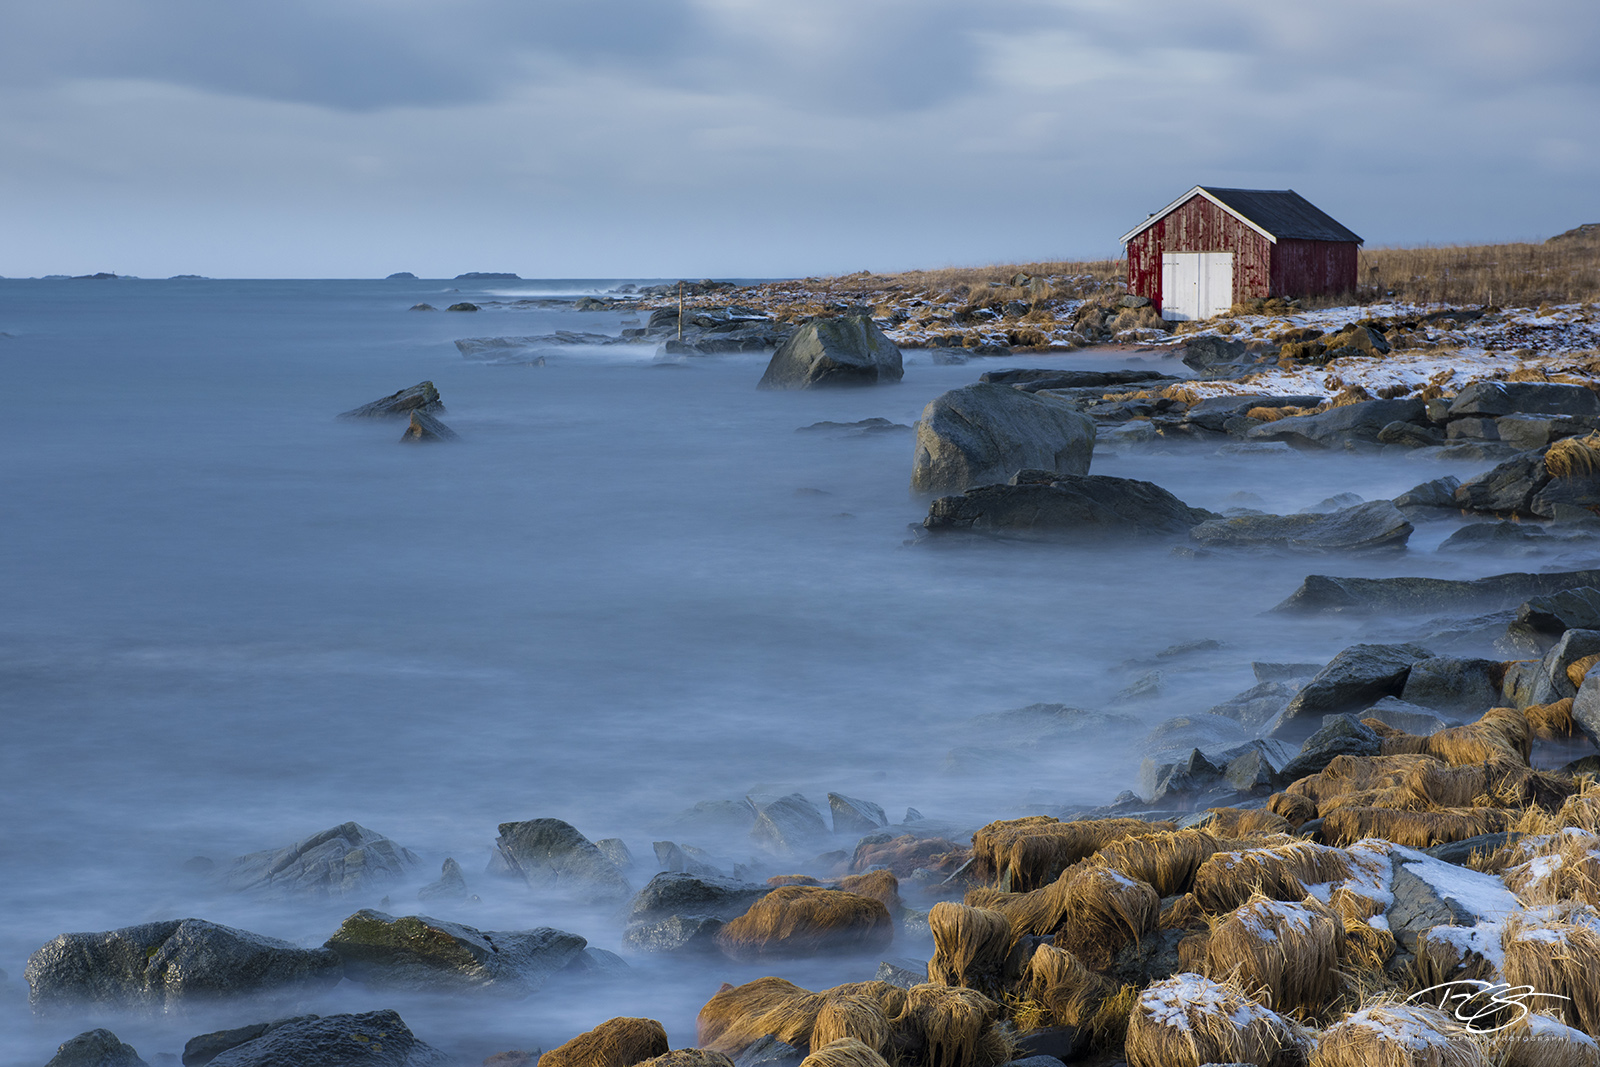 norway, gallery, boathouse, boat house, winter, cold, secluded, seclusion, smoky, waves, rocky shoreline, rocky coastline, quiet, reflective, reflection, peaceful, serene, seclusion, Moskenes, Reine, photo